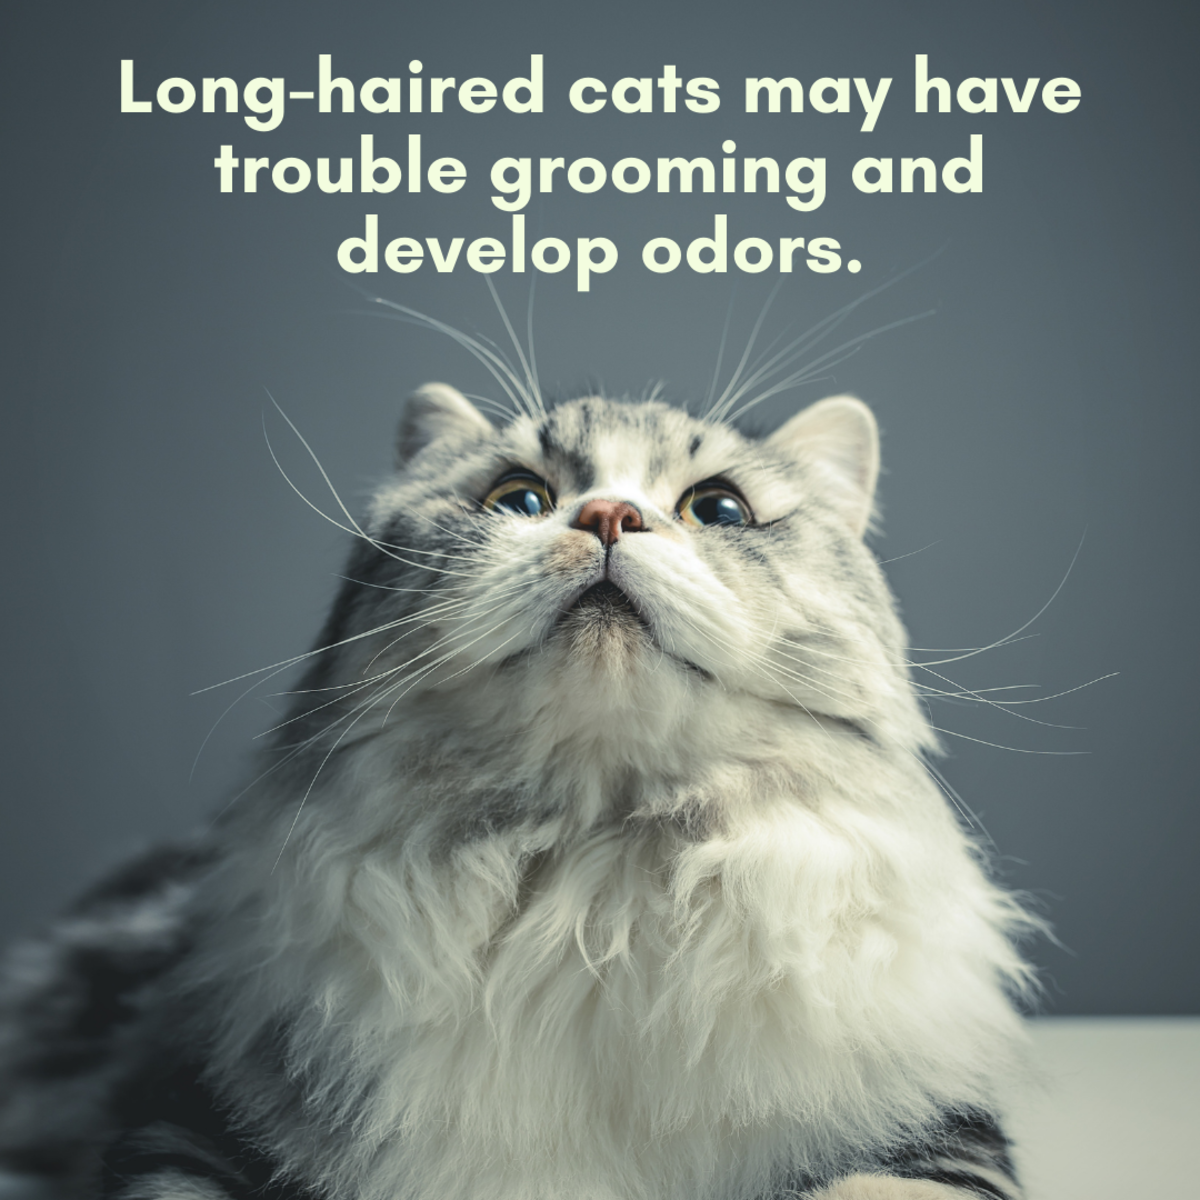 Some cats with long or dry fur may have trouble grooming it completely.